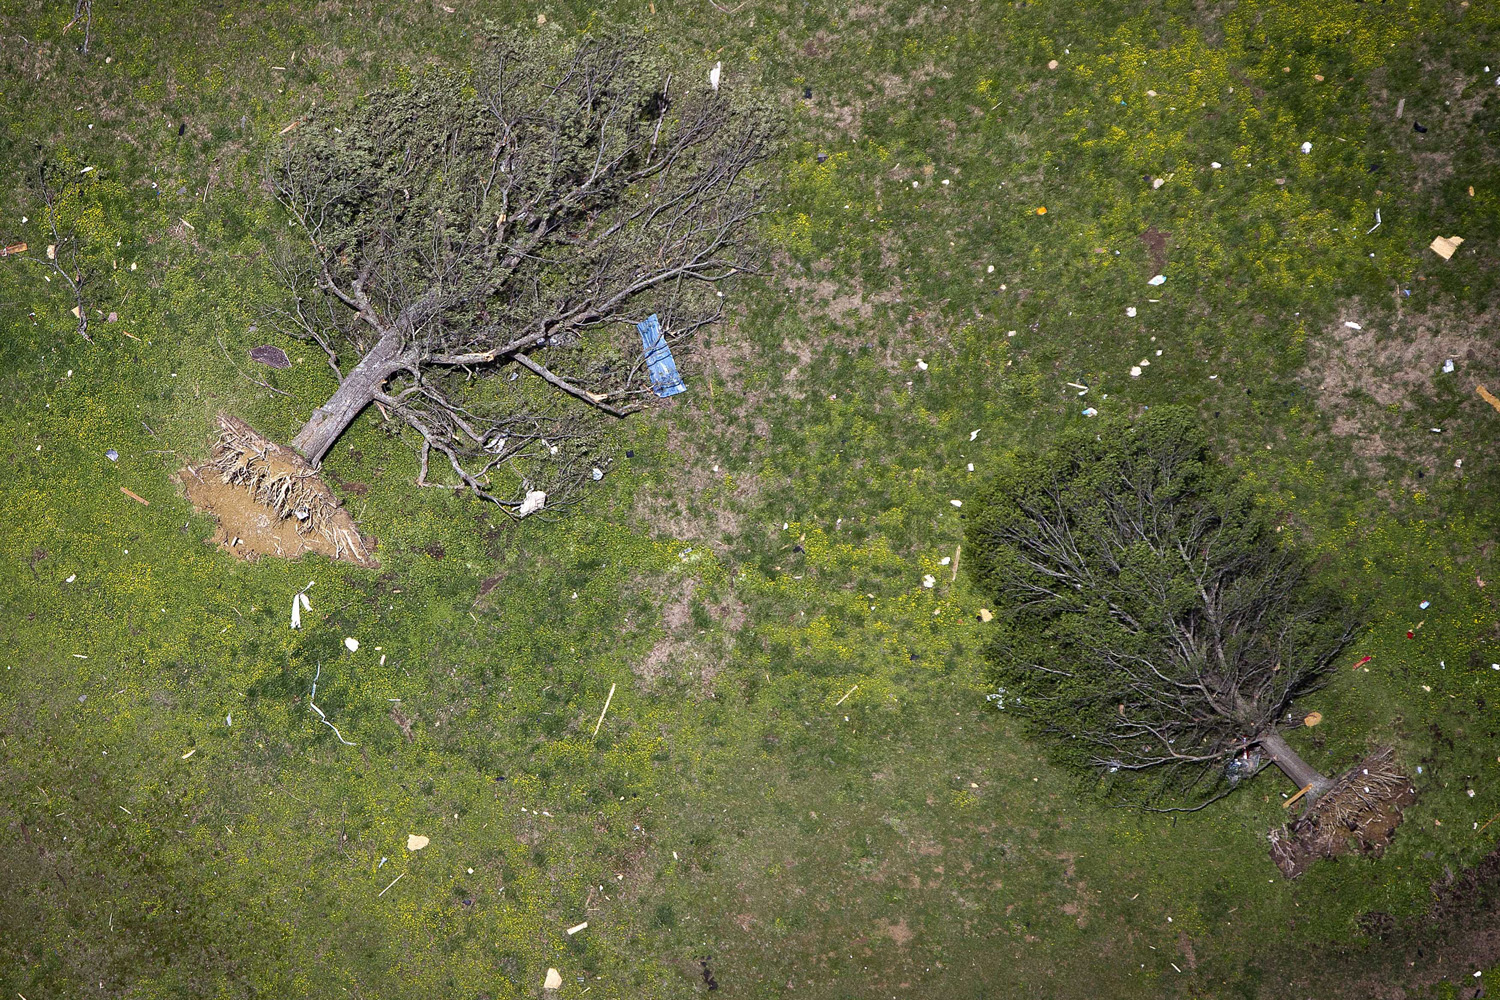 Apr. 28, 2014. Uprooted trees are pictured after a tornado hit Vilonia, Arkansas.